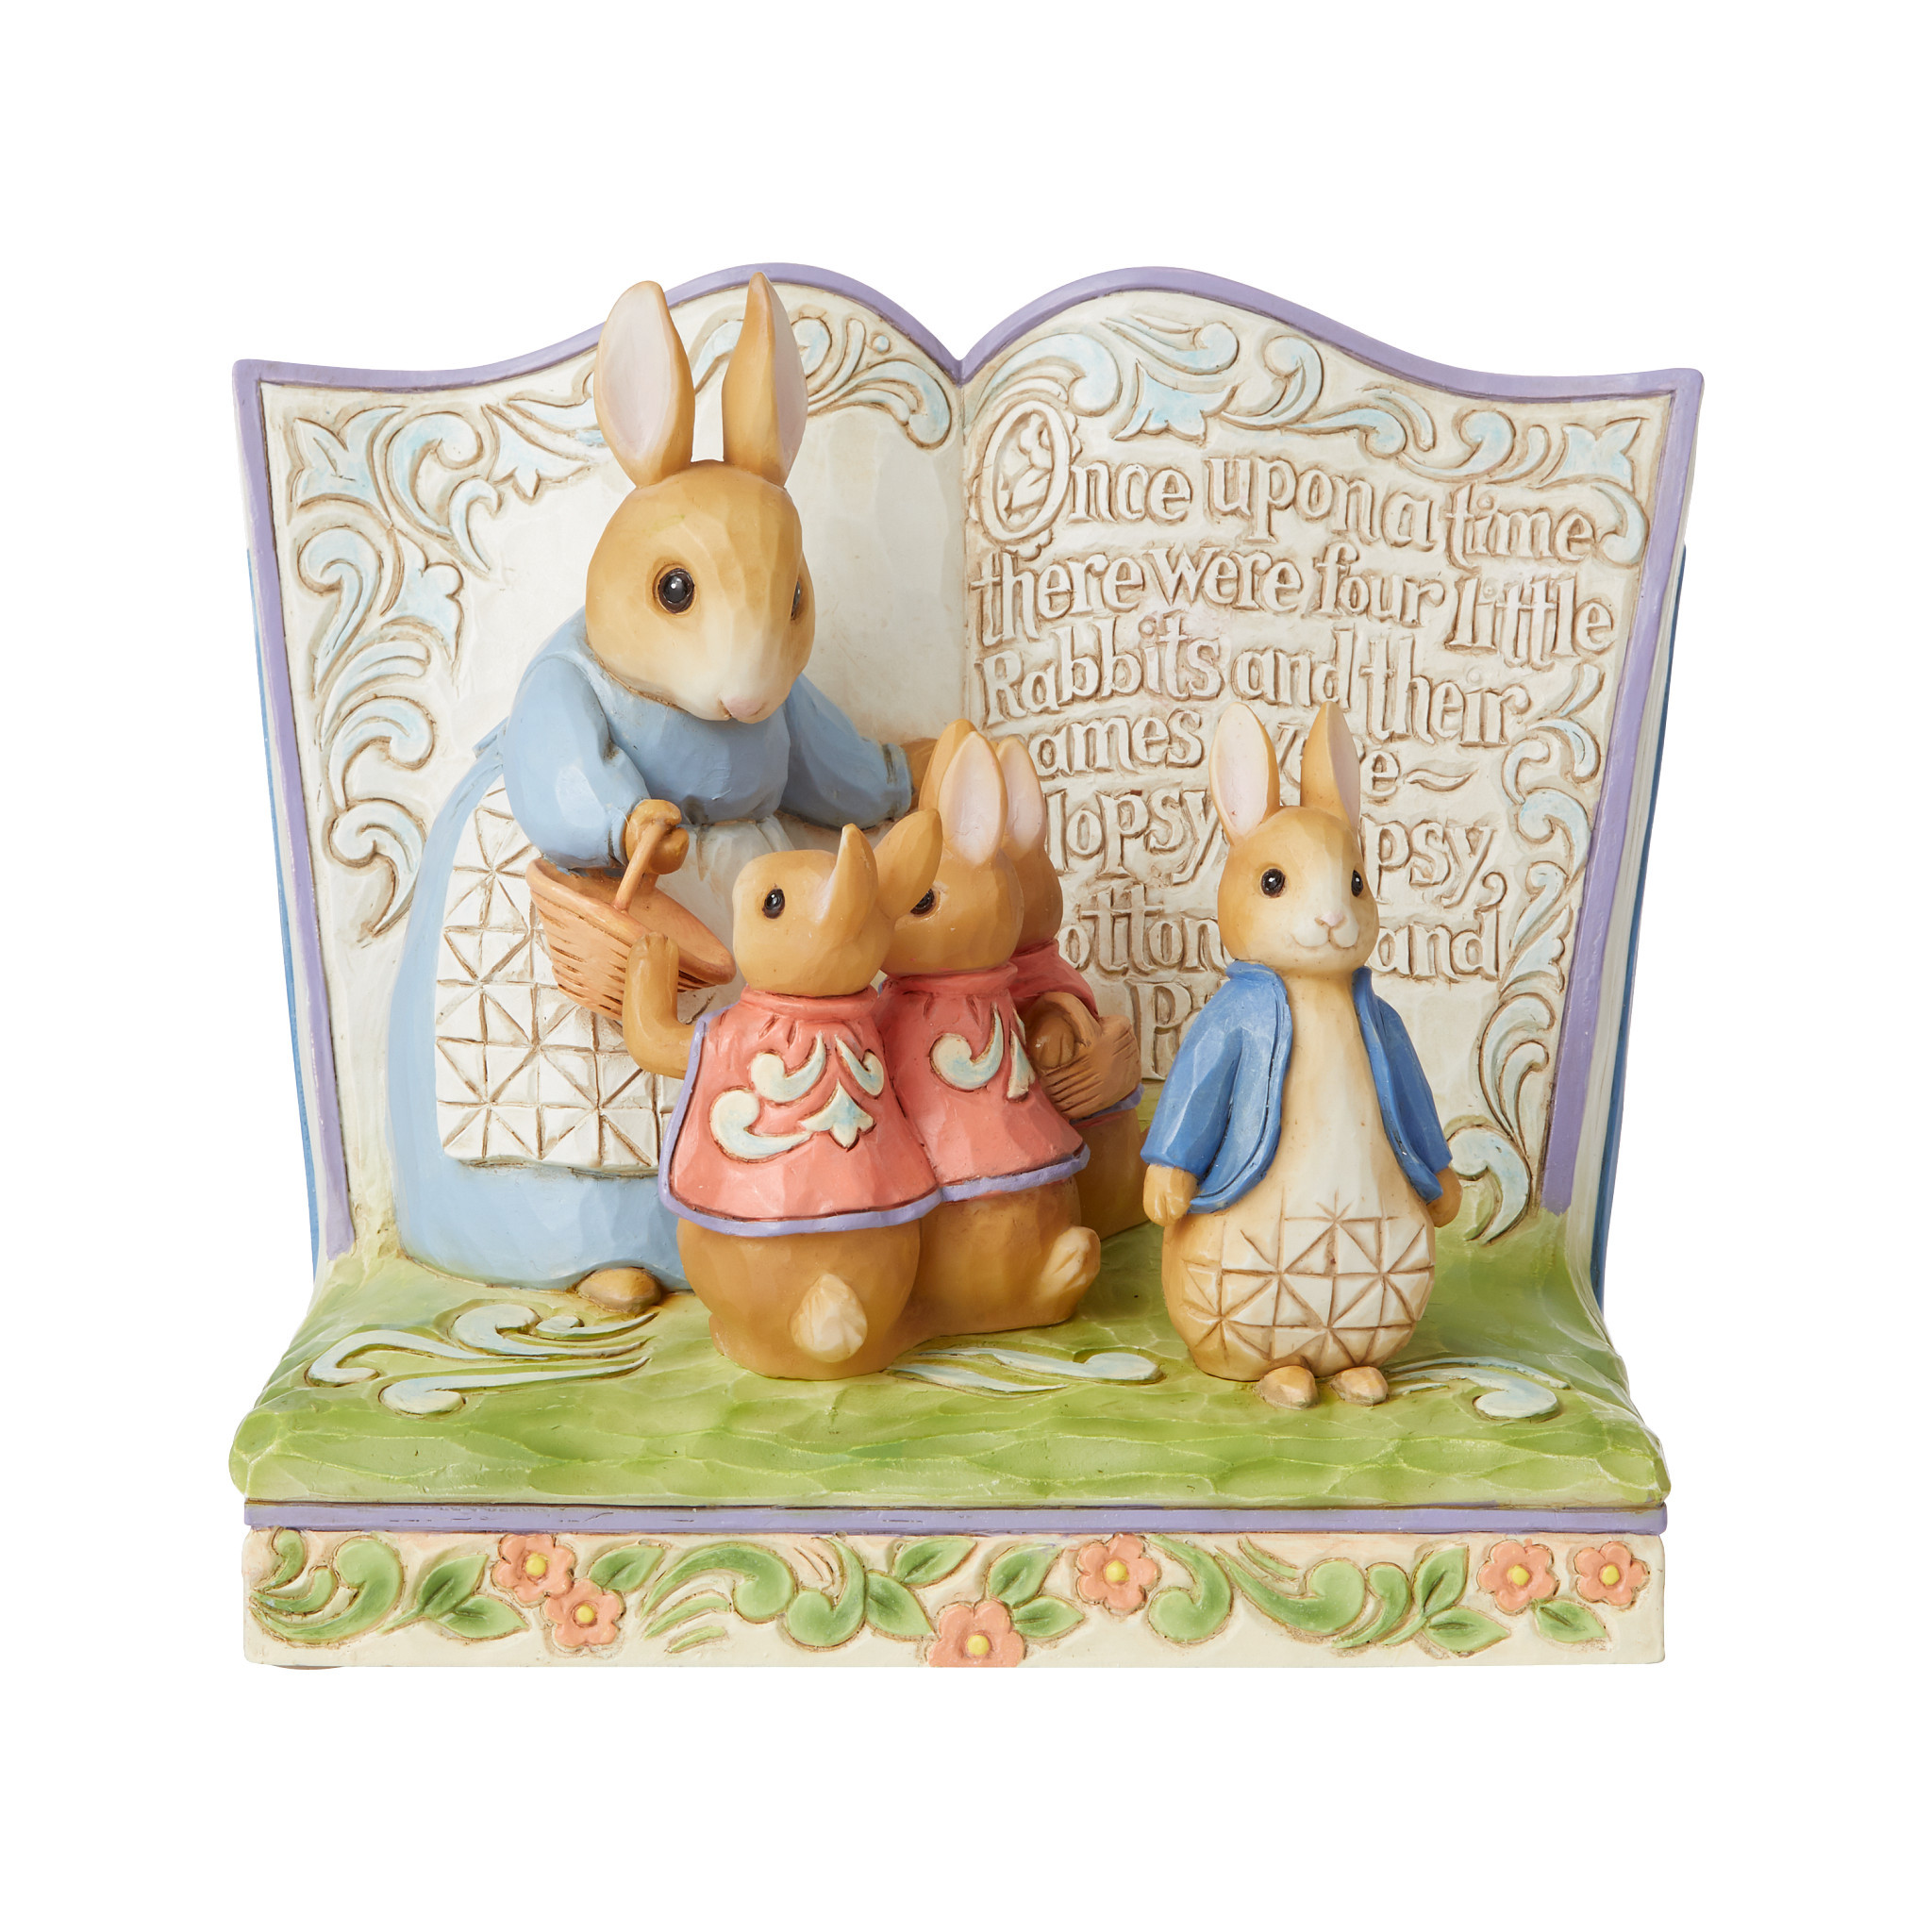 Jim Shore - Figurines 'Once Upon a Time There Were Four Little Rabbits N' 2021